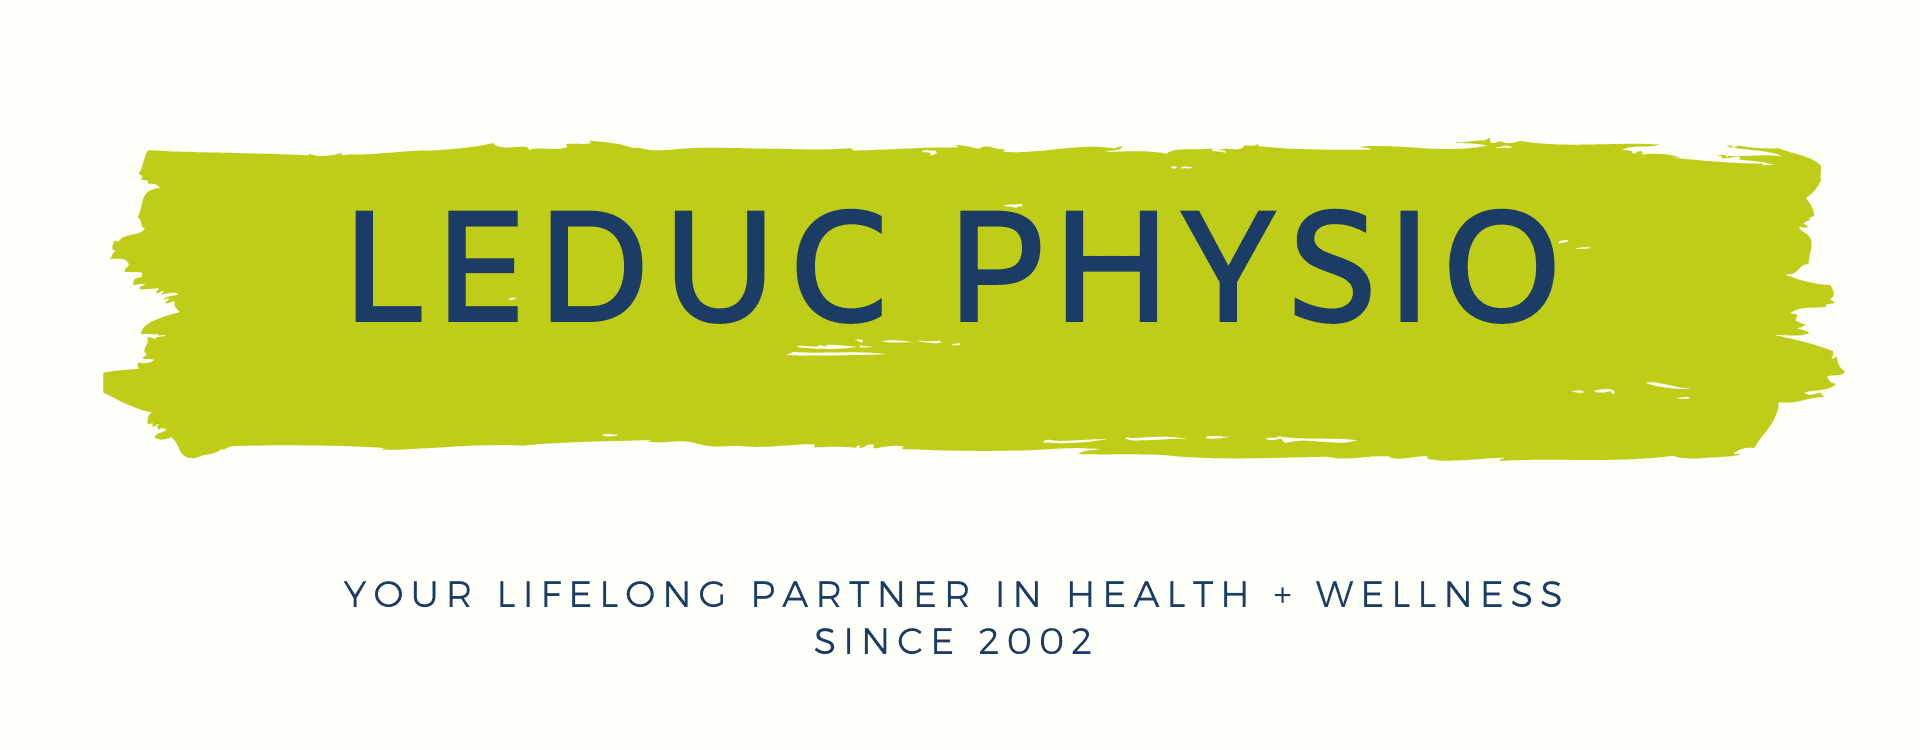 Leduc Physio - Video Appointment Available during COVID 19